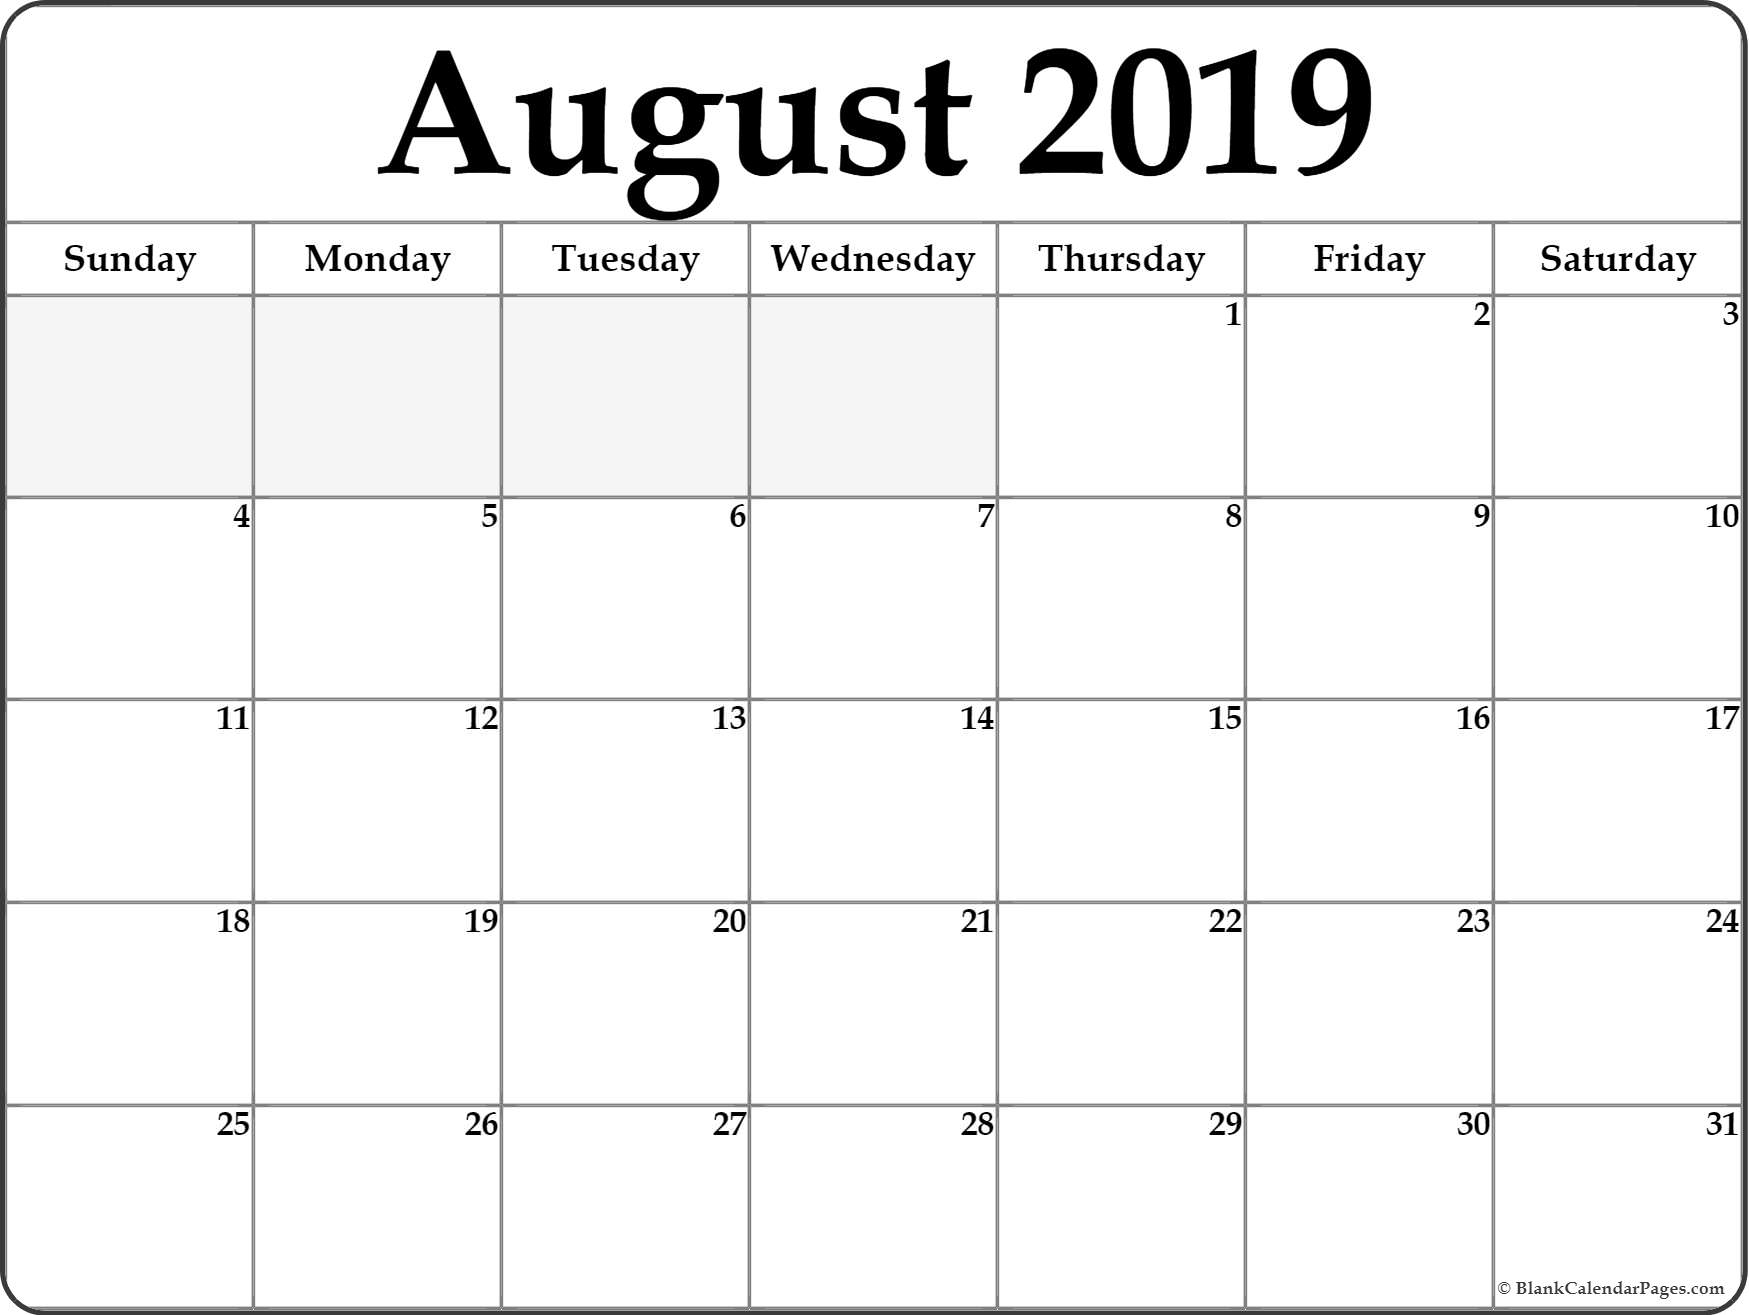 August 2019 Calendar | Free Printable Monthly Calendars intended for Blank Calendar To Write On August